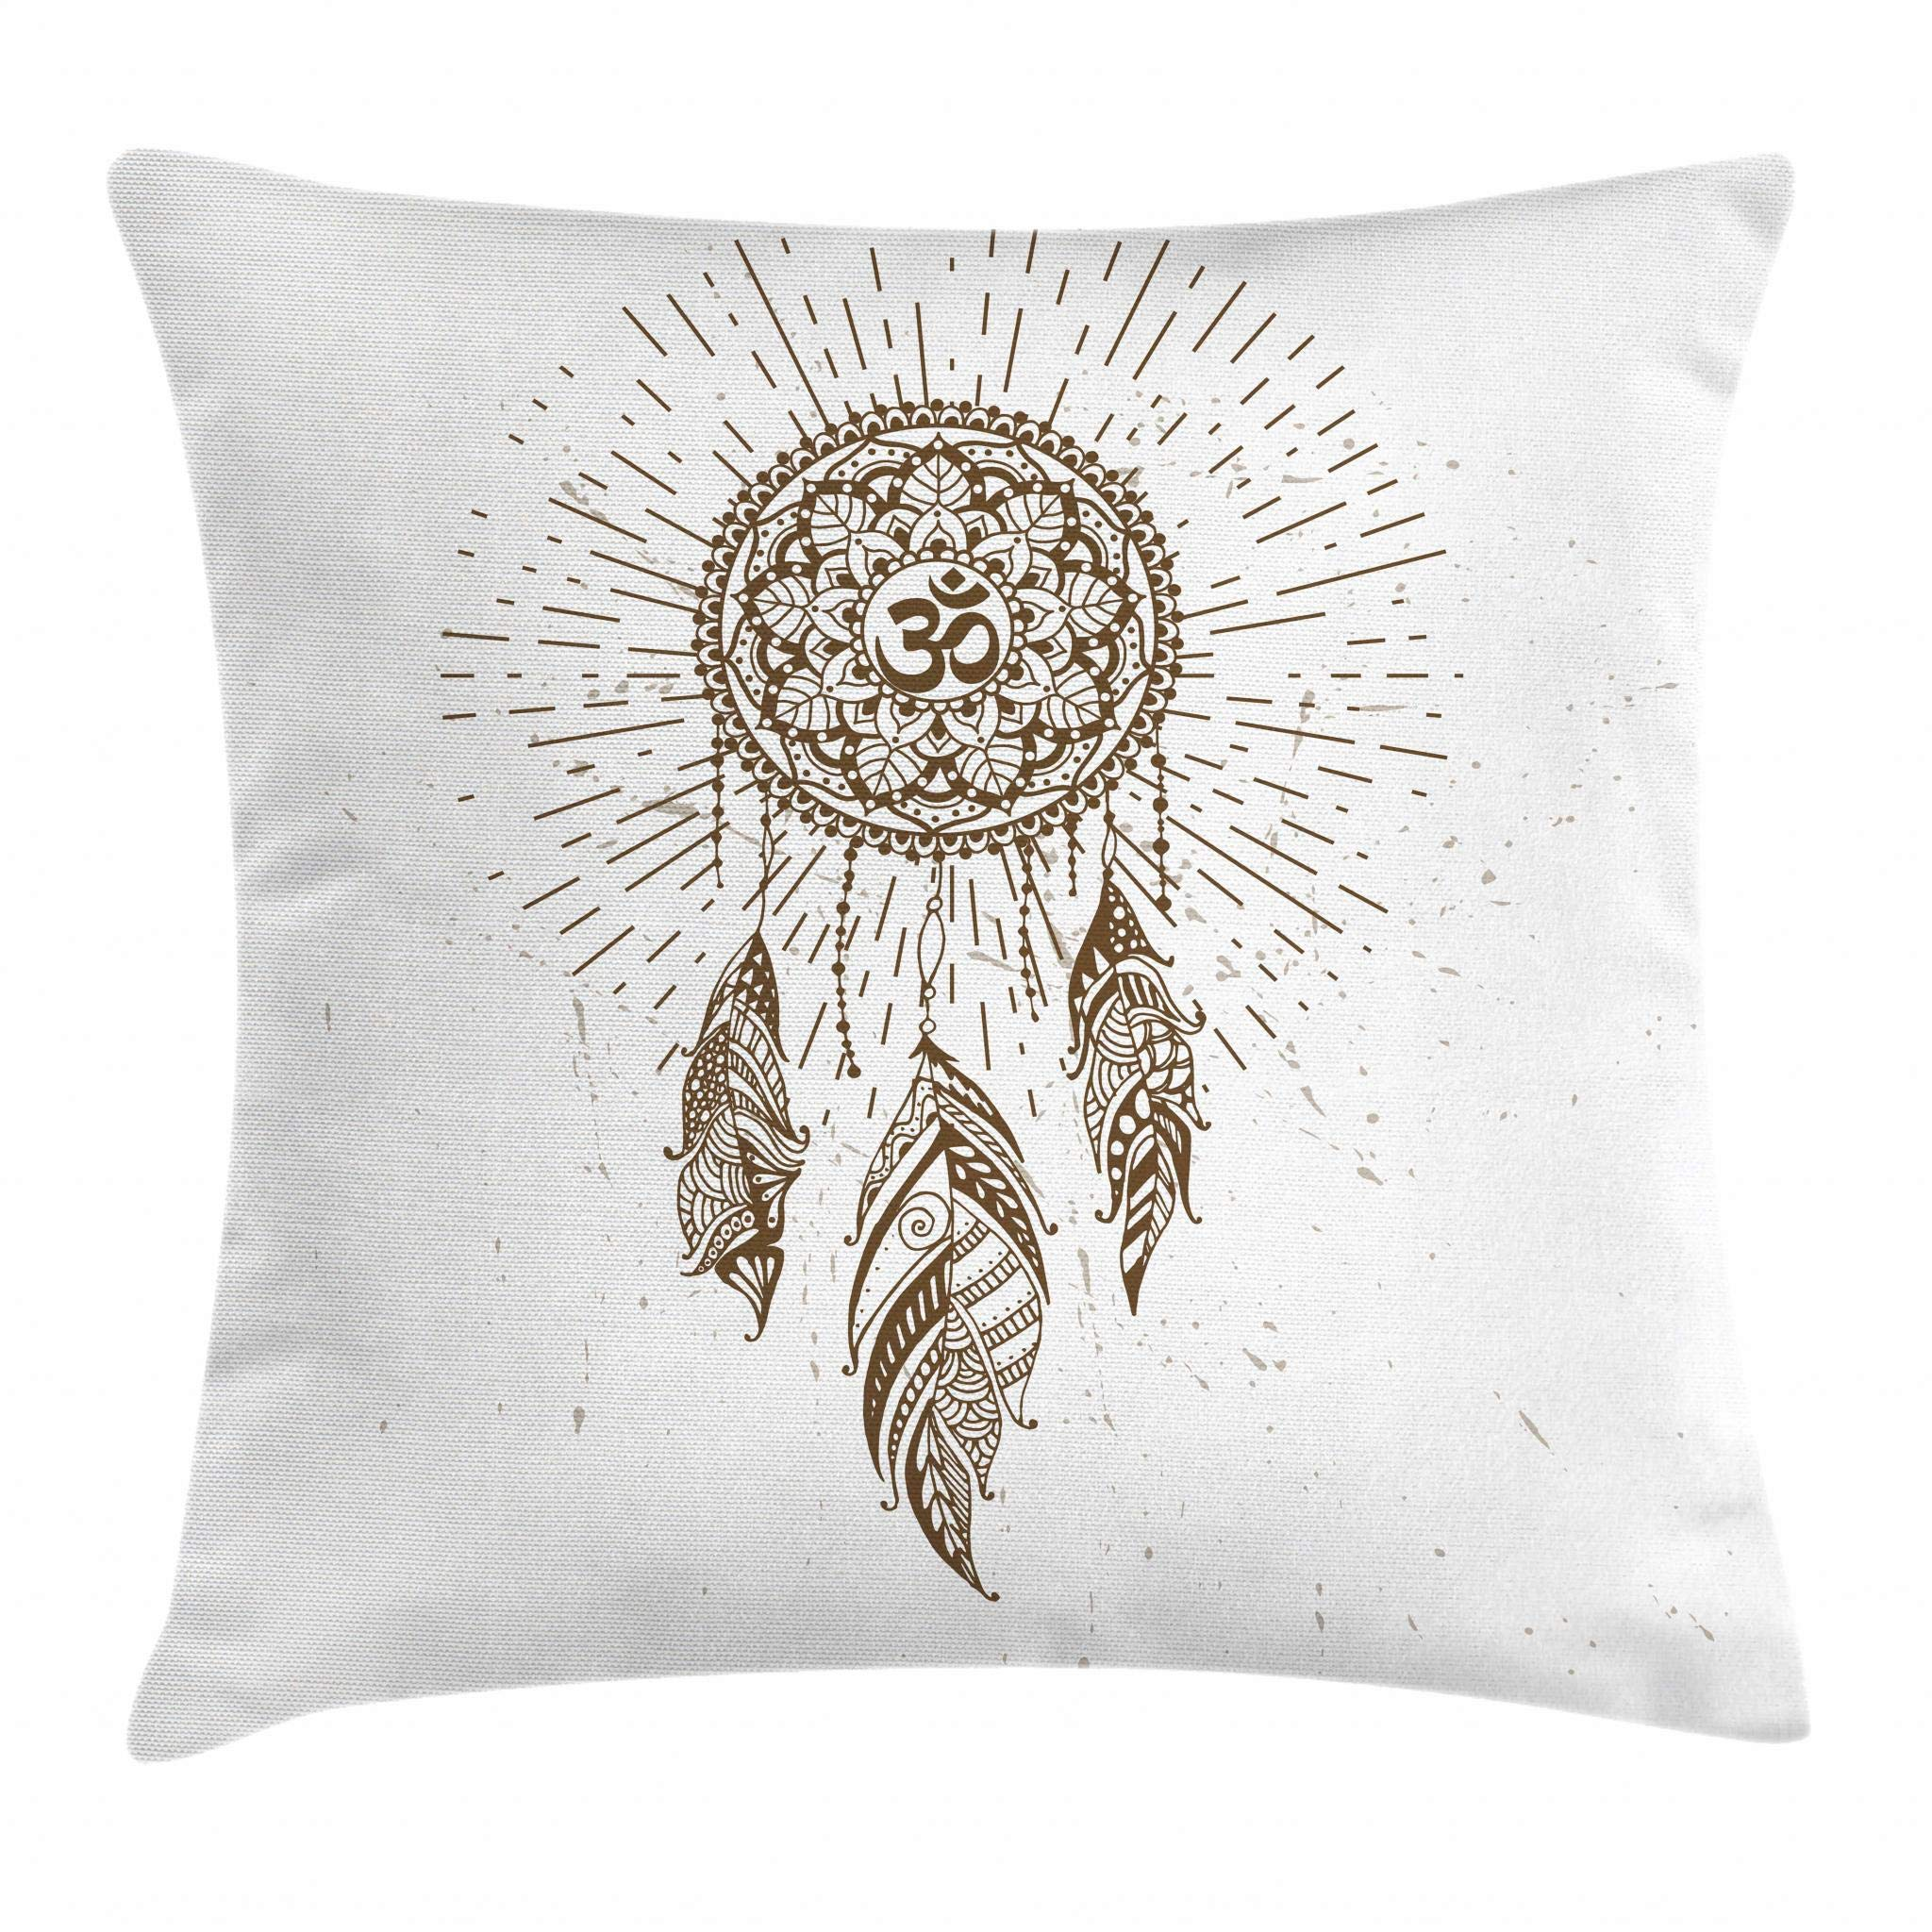 Ambesonne Yoga Throw Pillow Cushion Cover, Hand Drawn Style Dreamcatcher with Mandala Ancient Spiritual Symbol Hippie Art, Decorative Square Accent Pillow Case, 16 X 16 Inches, Brown and White